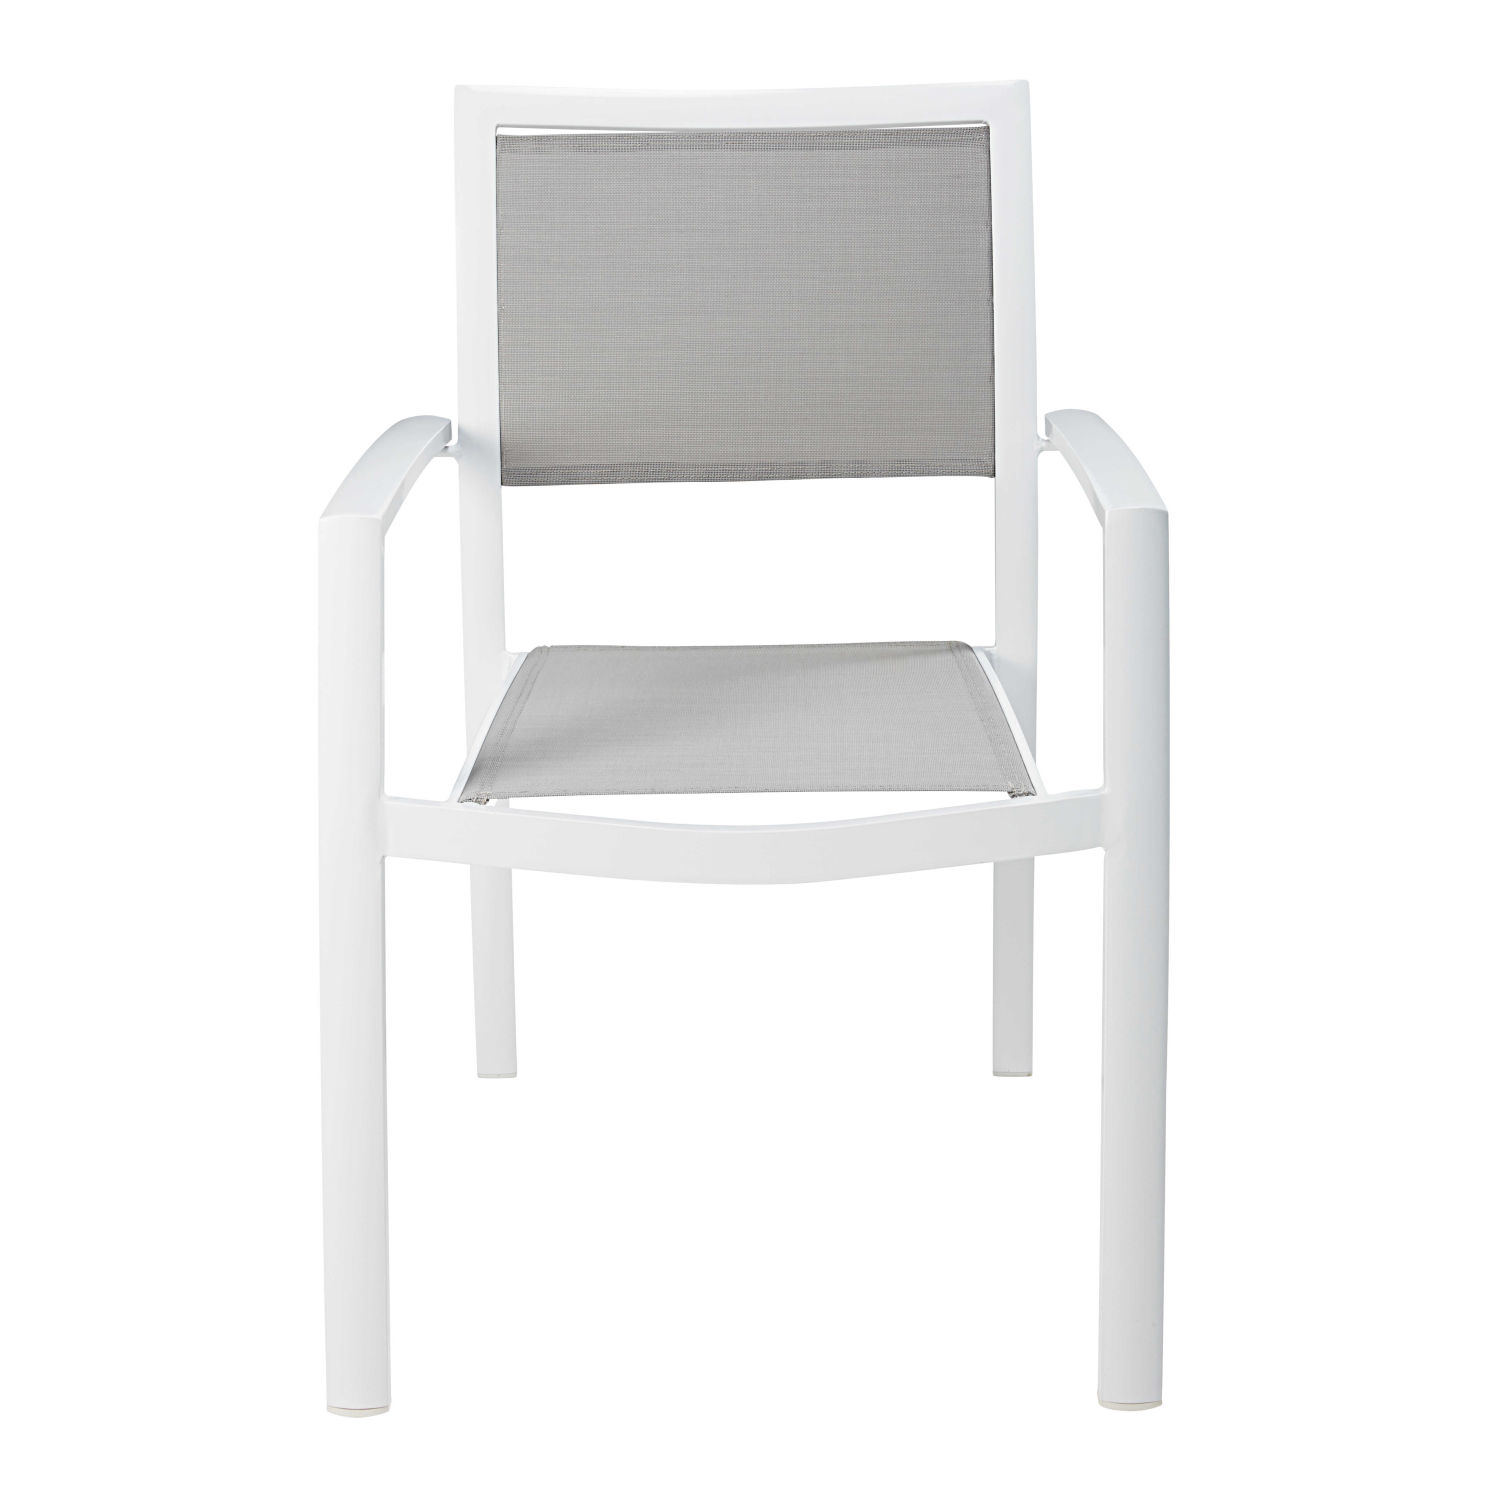 fauteuil de jardin en aluminium blanc et toile plastifi e gris clair maisons du monde. Black Bedroom Furniture Sets. Home Design Ideas